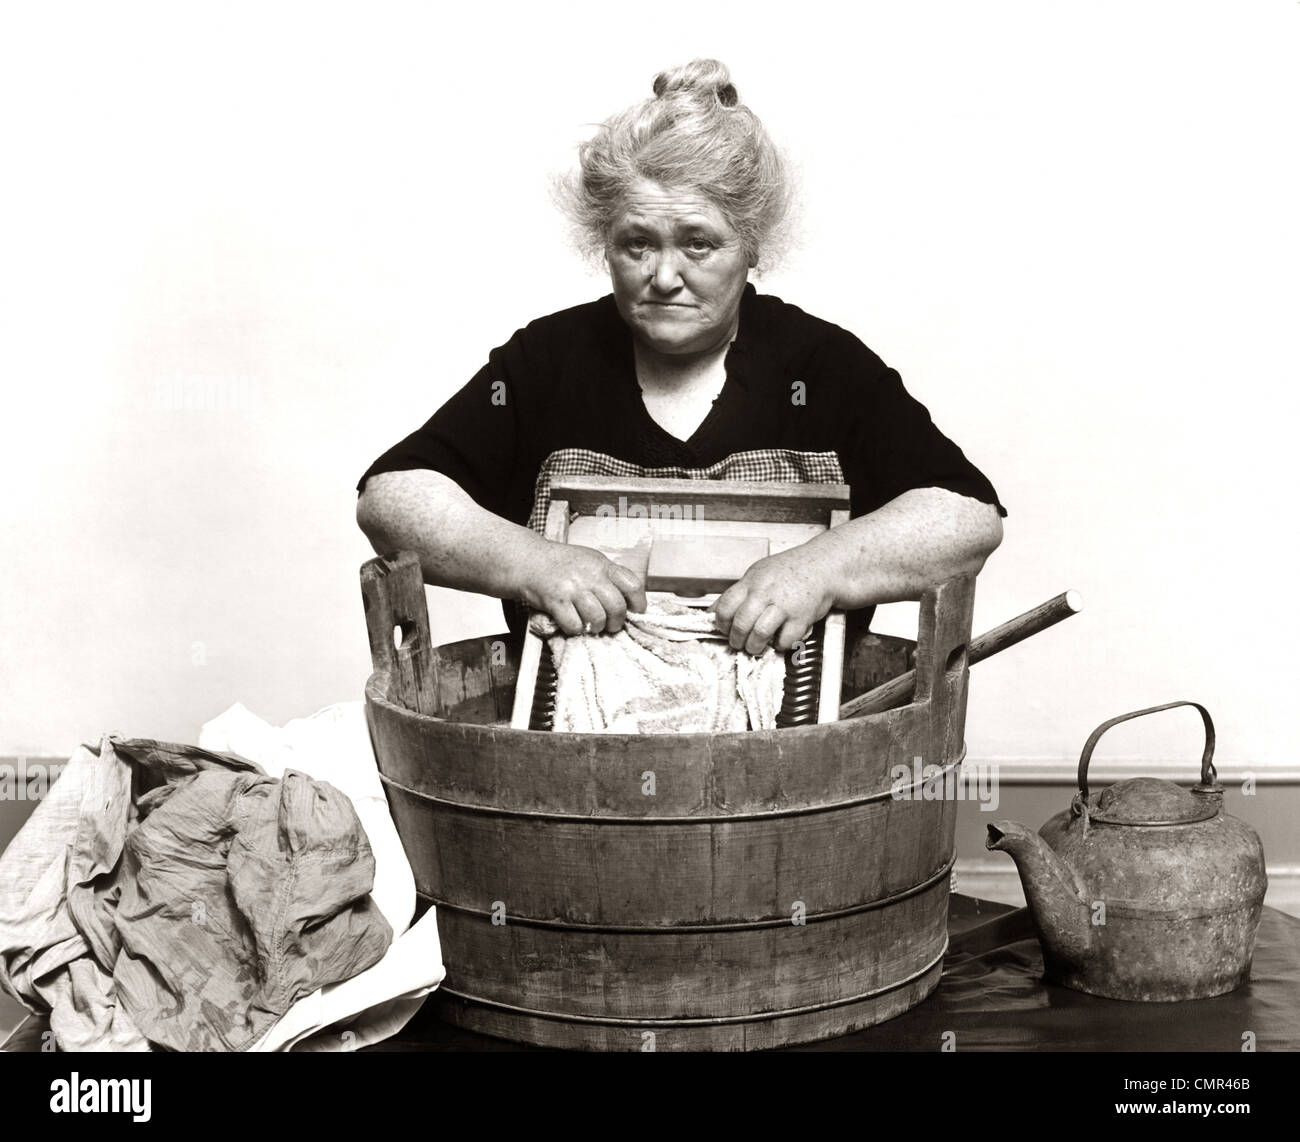 1920s 1930s 1940s SENIOR WOMAN WASHING CLOTHES IN OLD FASHIONED WOODEN TUB AND WASHBOARD Stock Photo